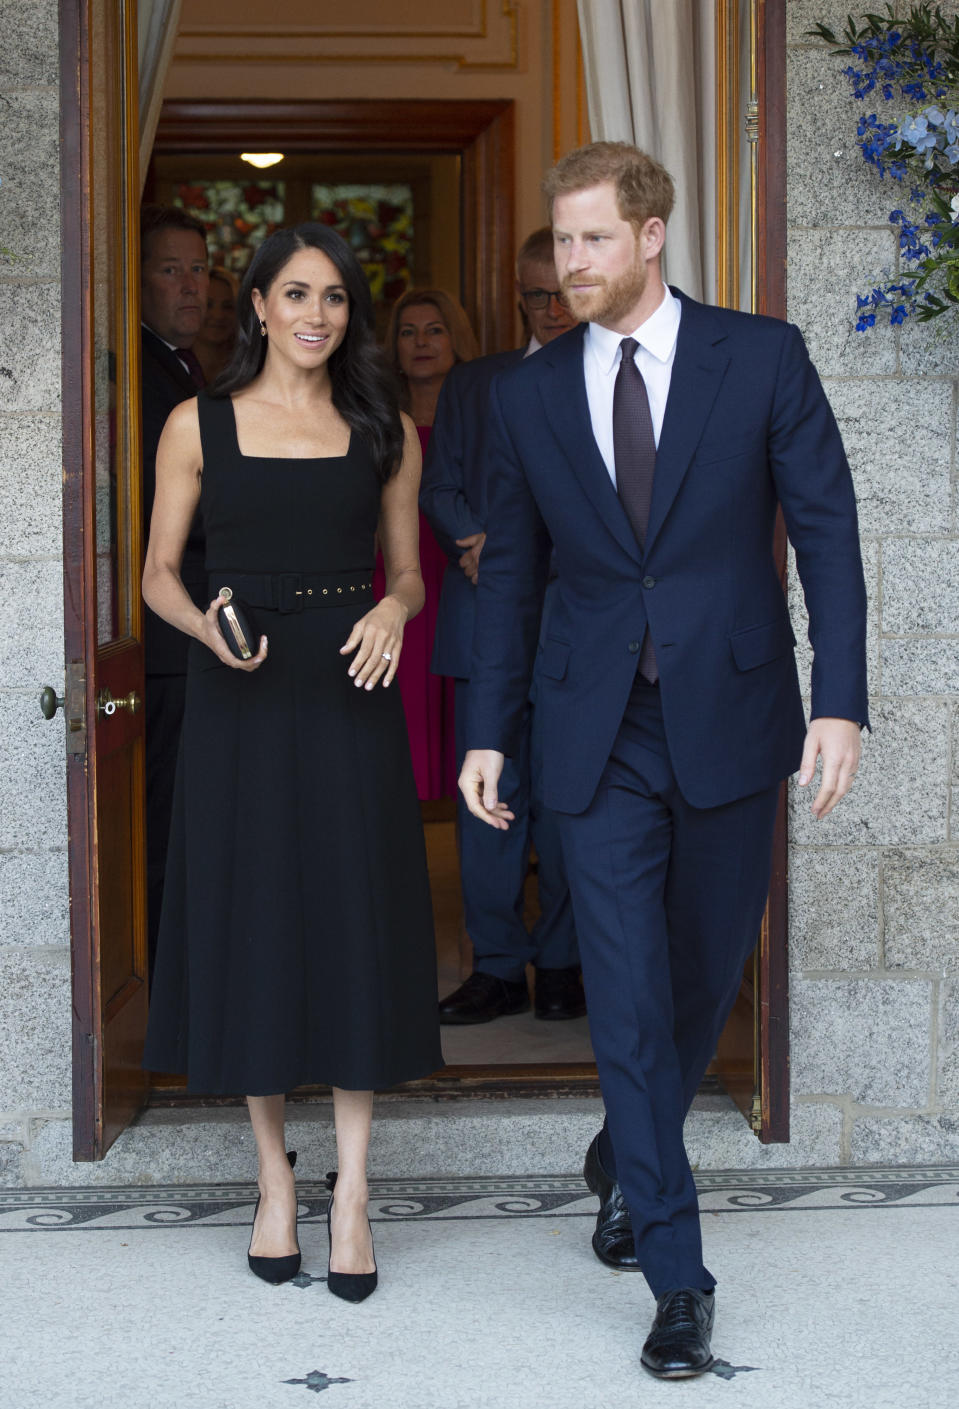 On July 10, Meghan changed into an Emilia Wickstead dress for a garden party at Glencairn House [Photo: Getty]